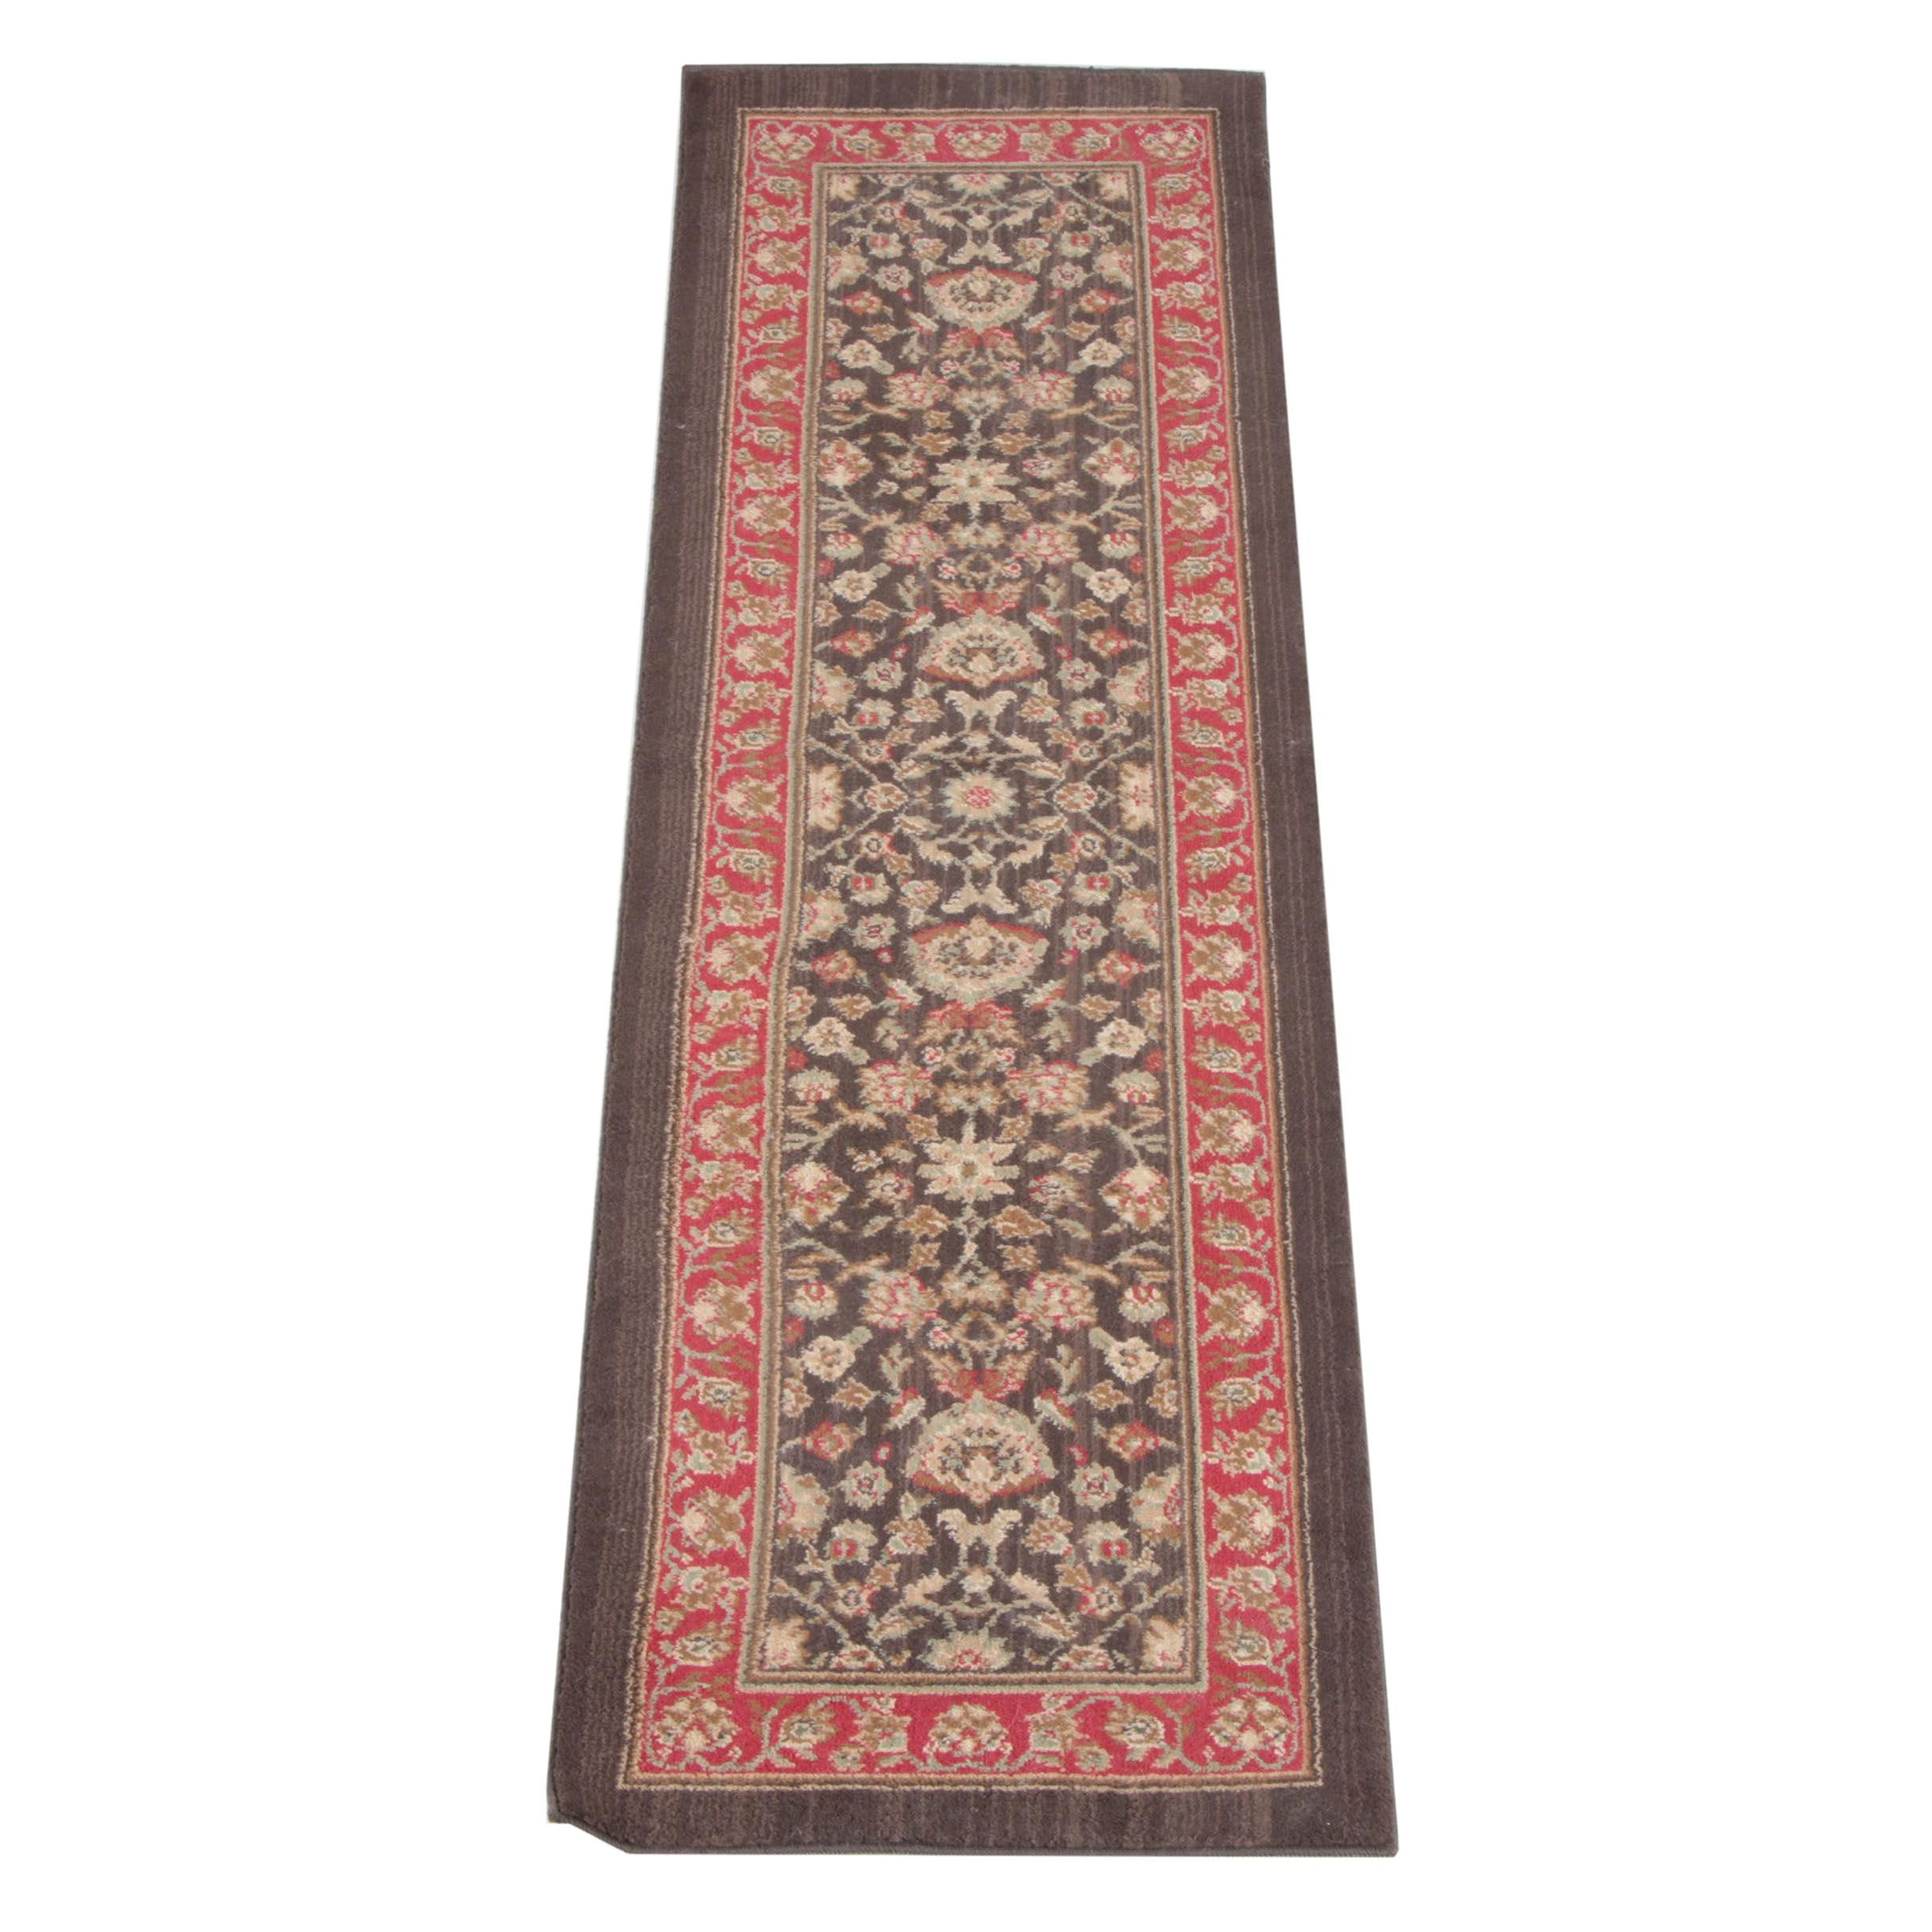 Power-Loomed Indo-Persian Style Wool Carpet Runner